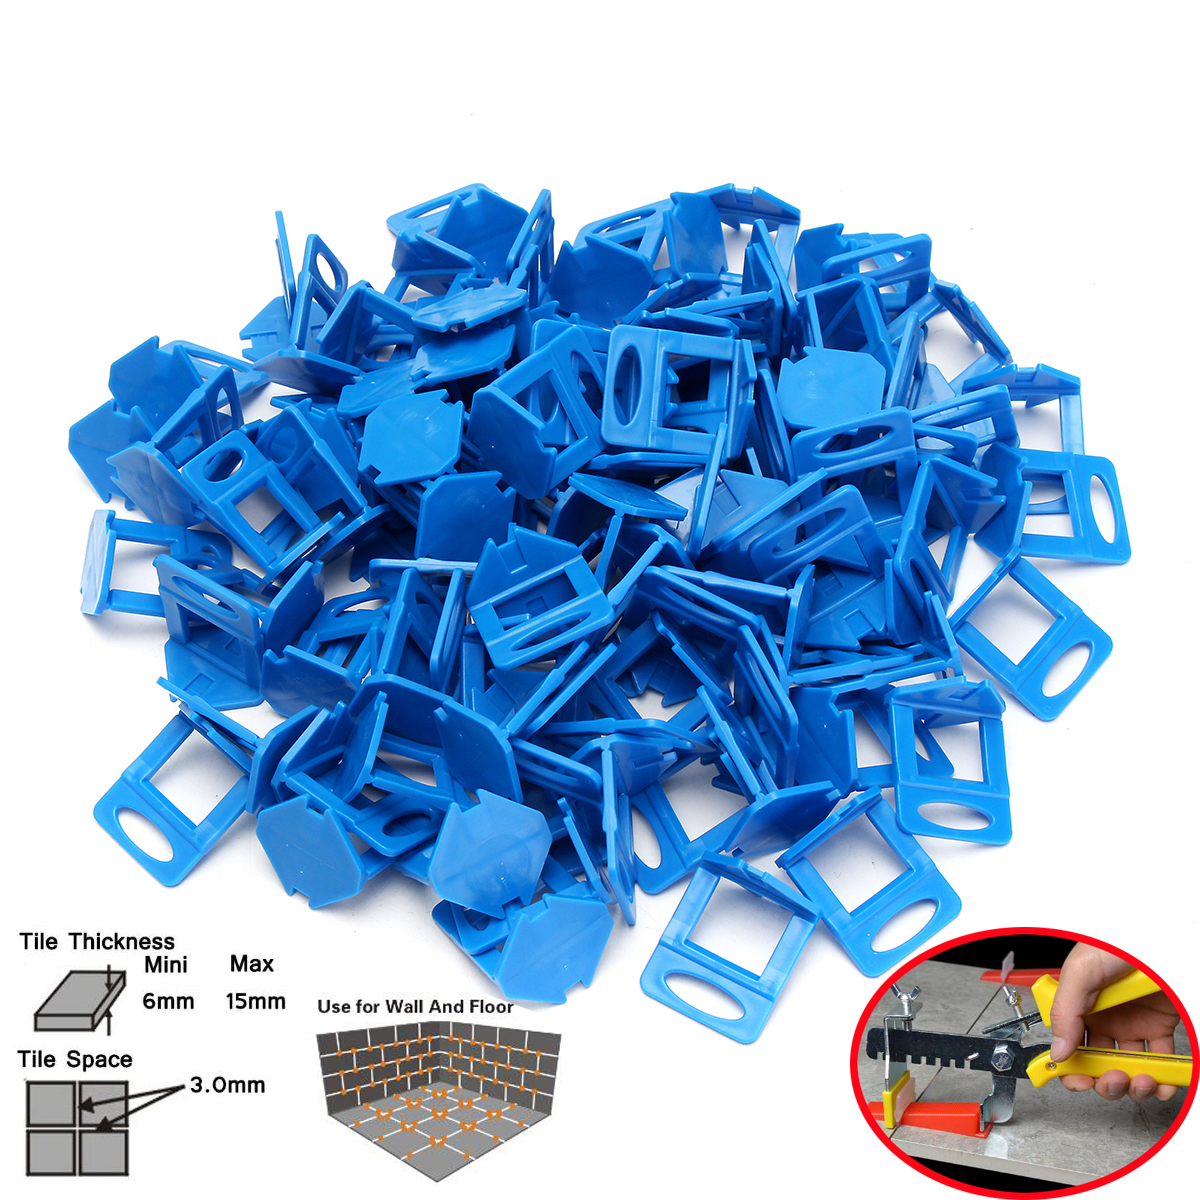 200/400/800x White/Blue wedge Plastic Clips Tile Spacers Leveler Ceramic Wall Floor Leveling System Tool, 1.0mm/1.5mm/2mm/3mm